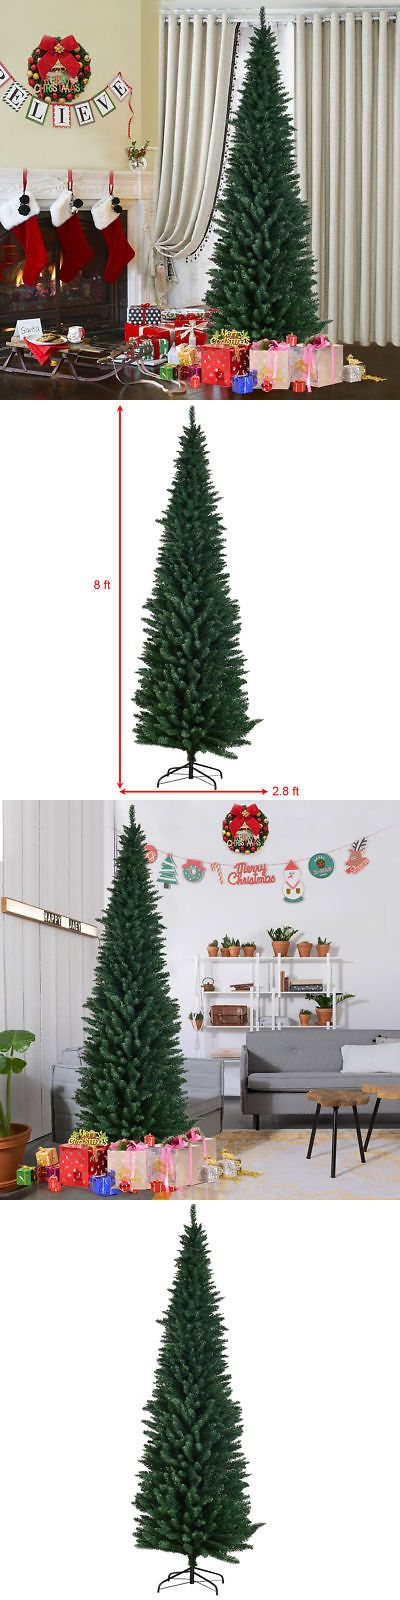 Artificial Christmas Trees 117414 8Ft Pvc Artificial Slim Pencil